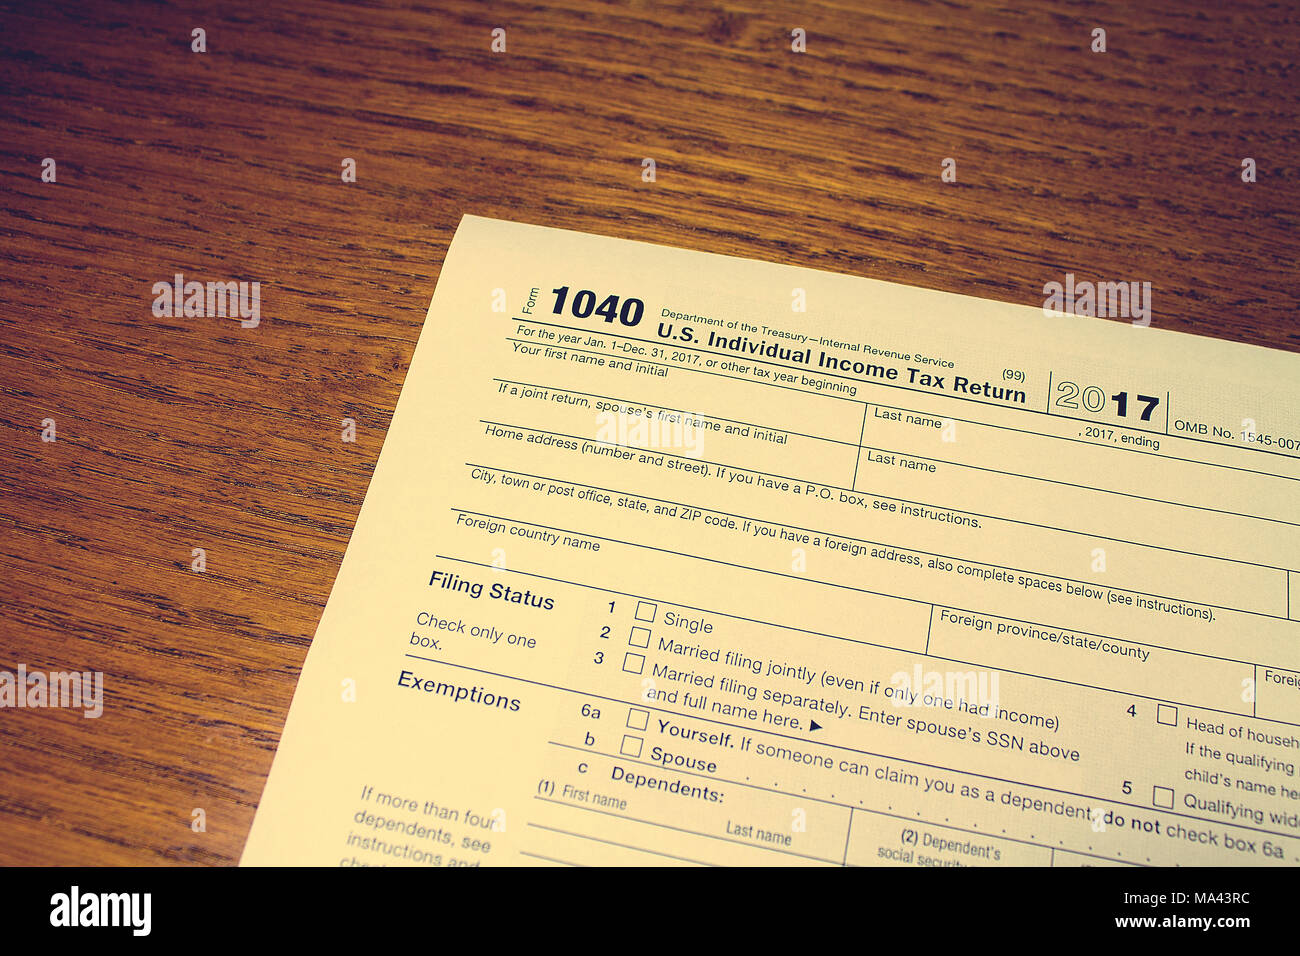 1040 tax form stock photos 1040 tax form stock images alamy tax day the tax form 1040 is on a wooden table stock image falaconquin